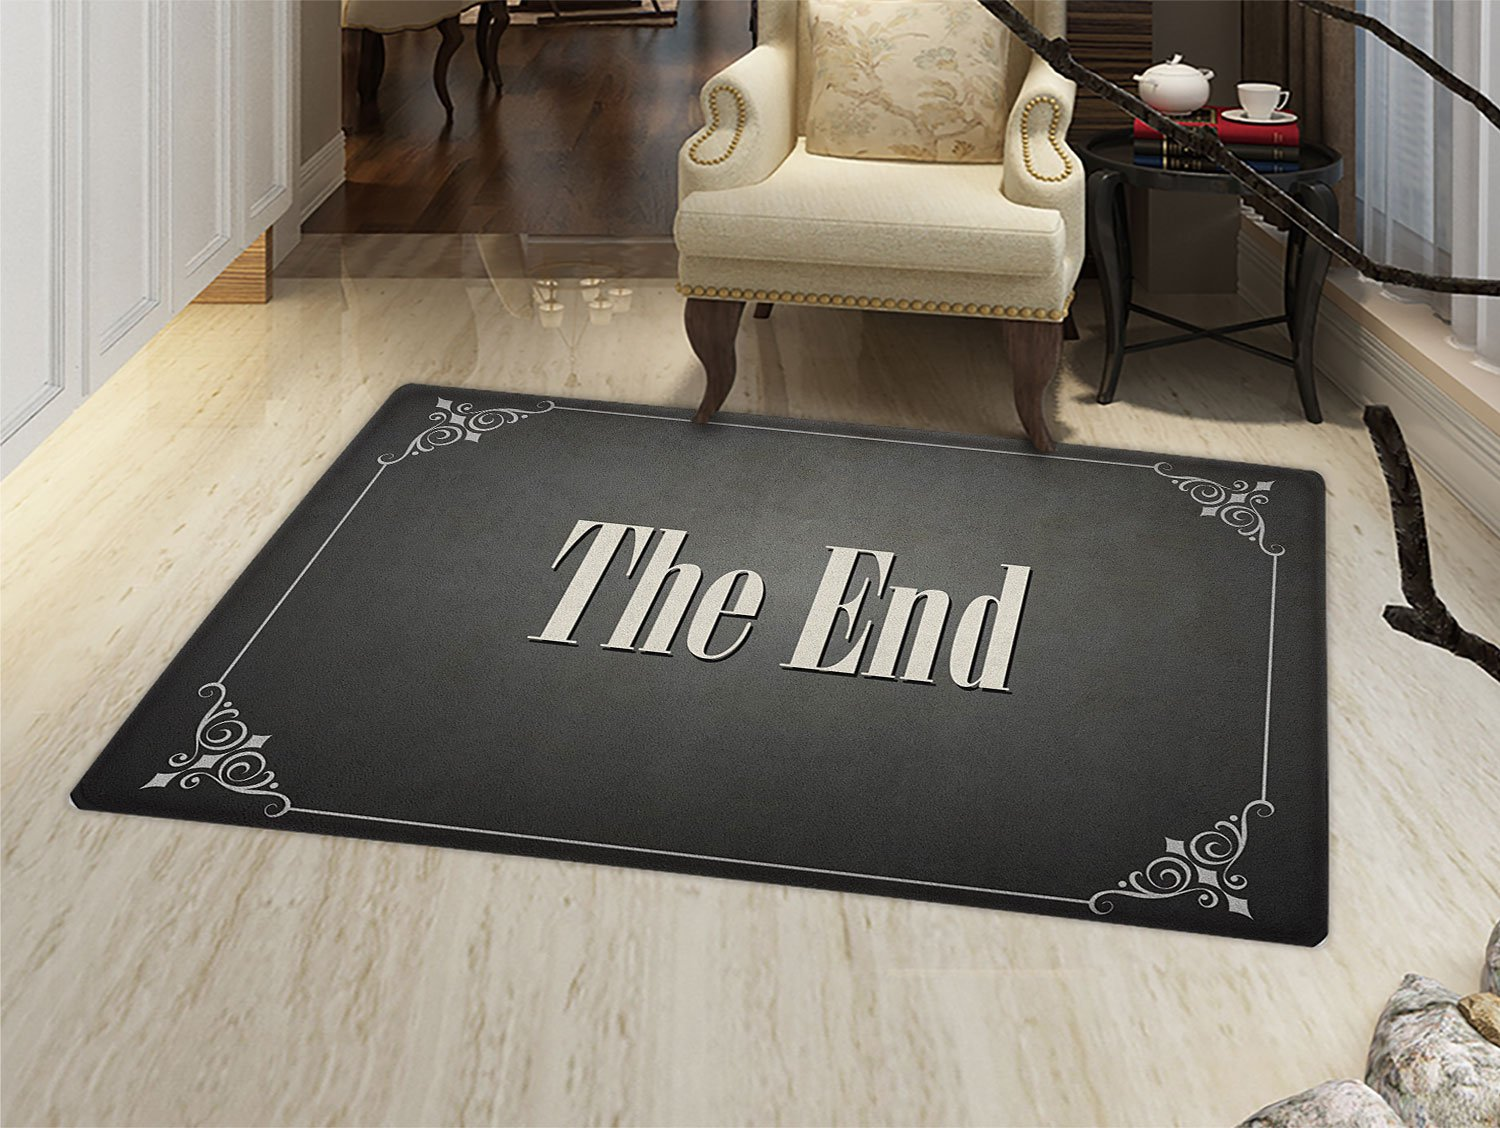 Movie Theater Floor Mat for kids The End Quote with Swirled Frame on an Abstract Ombre Background Door Mat Increase Charcoal Grey Cream